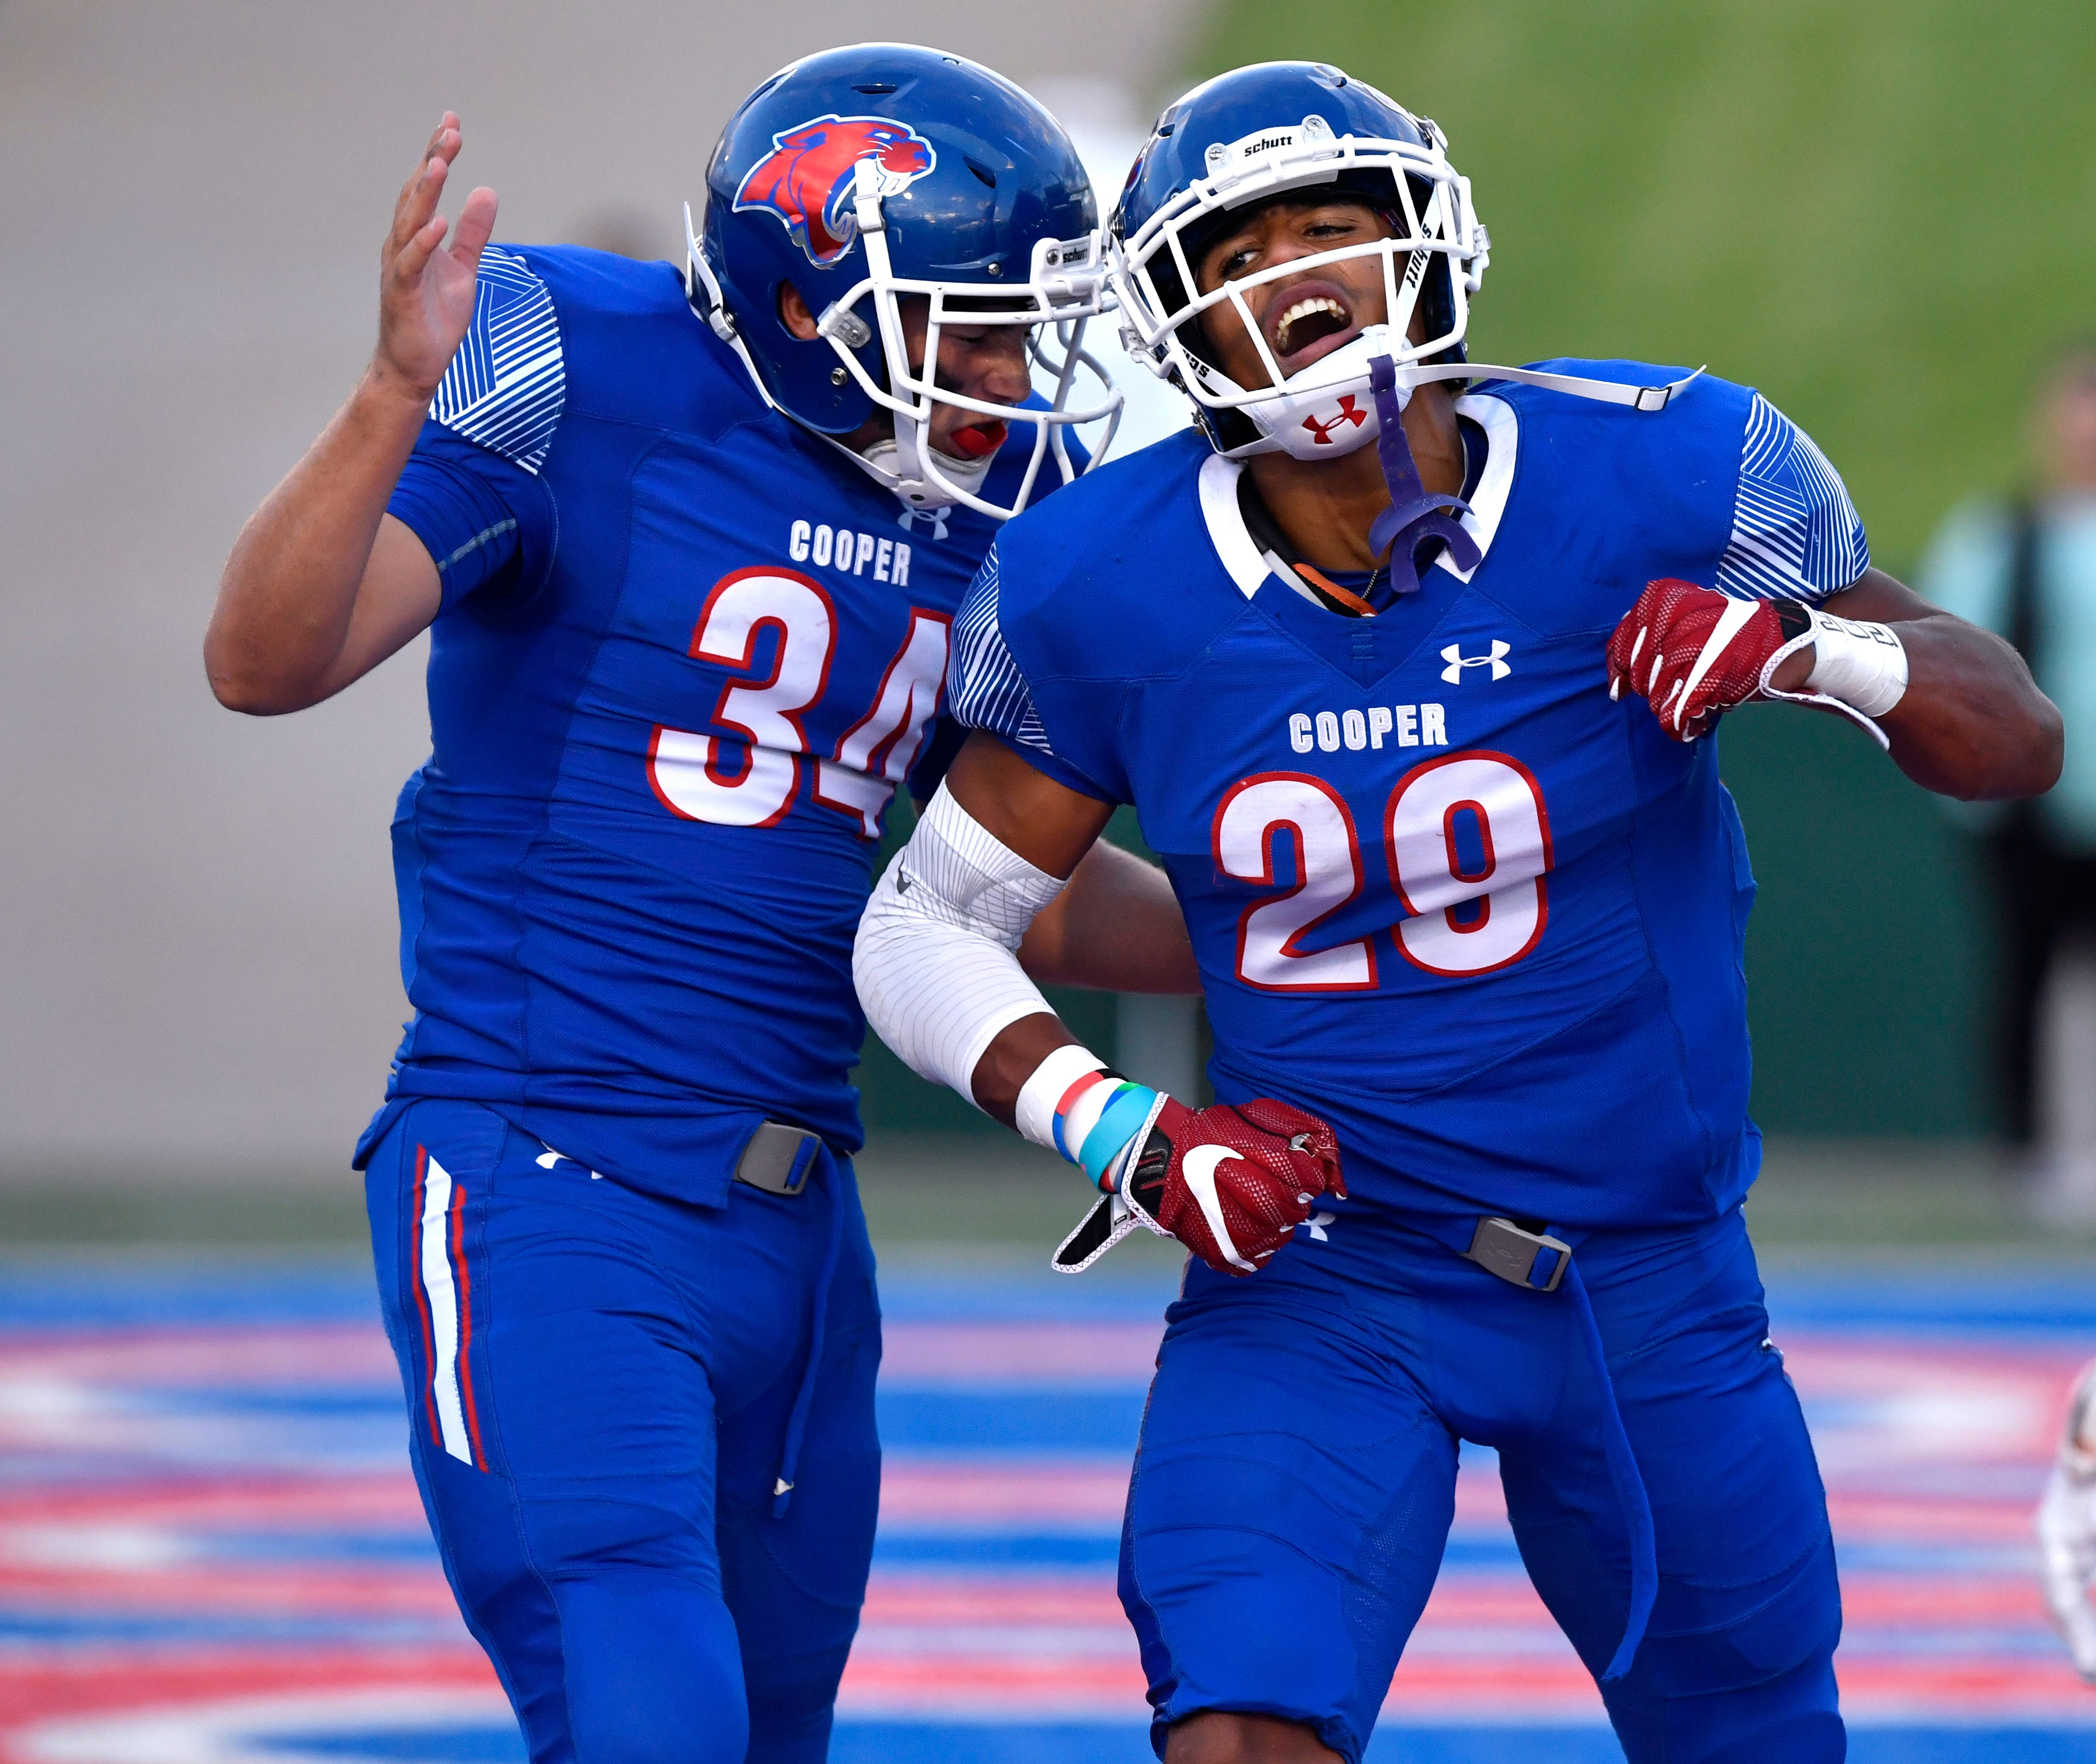 Cooper running back Xavier Wishert (left) congratulates teammate Aeneas Favors on his touchdown. Cooper and Wylie high schools faced each other for the first time Thursday Sept. 20, 2018 for the Southtown Showdown at Shotwell Stadium. Cooper won, 48-0.